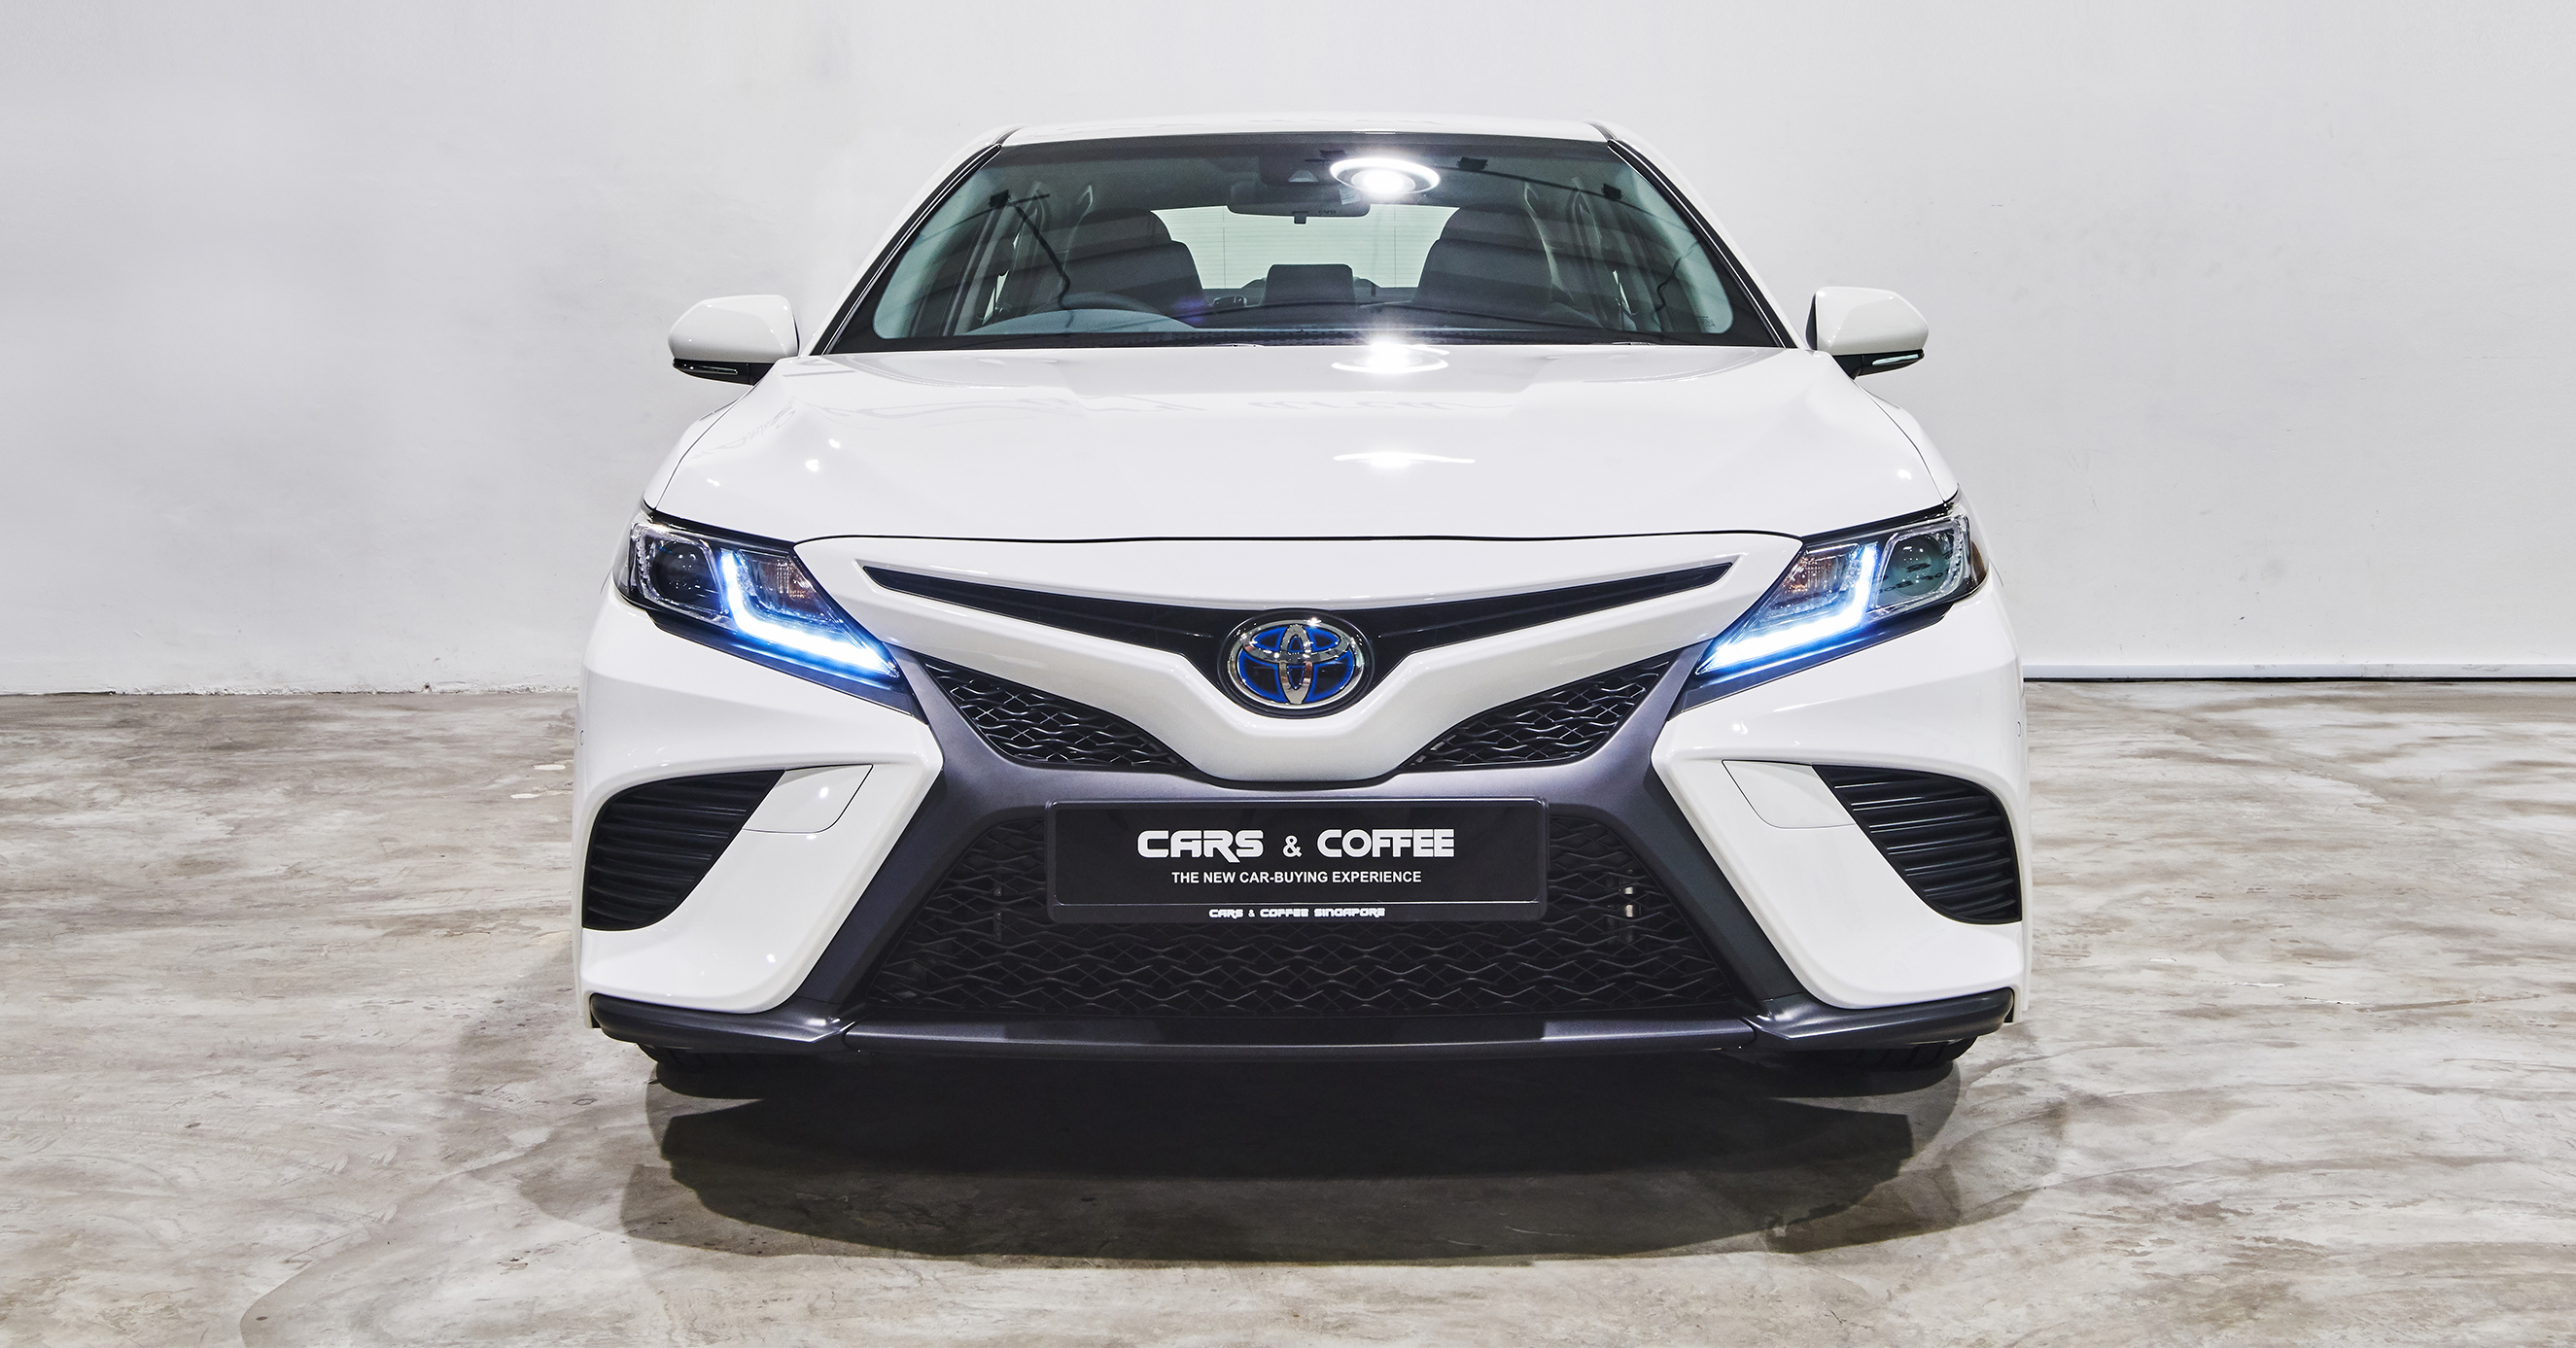 Sleek and seductive, the eye-catching Camry blends brilliance with beauty to make a lasting impression.